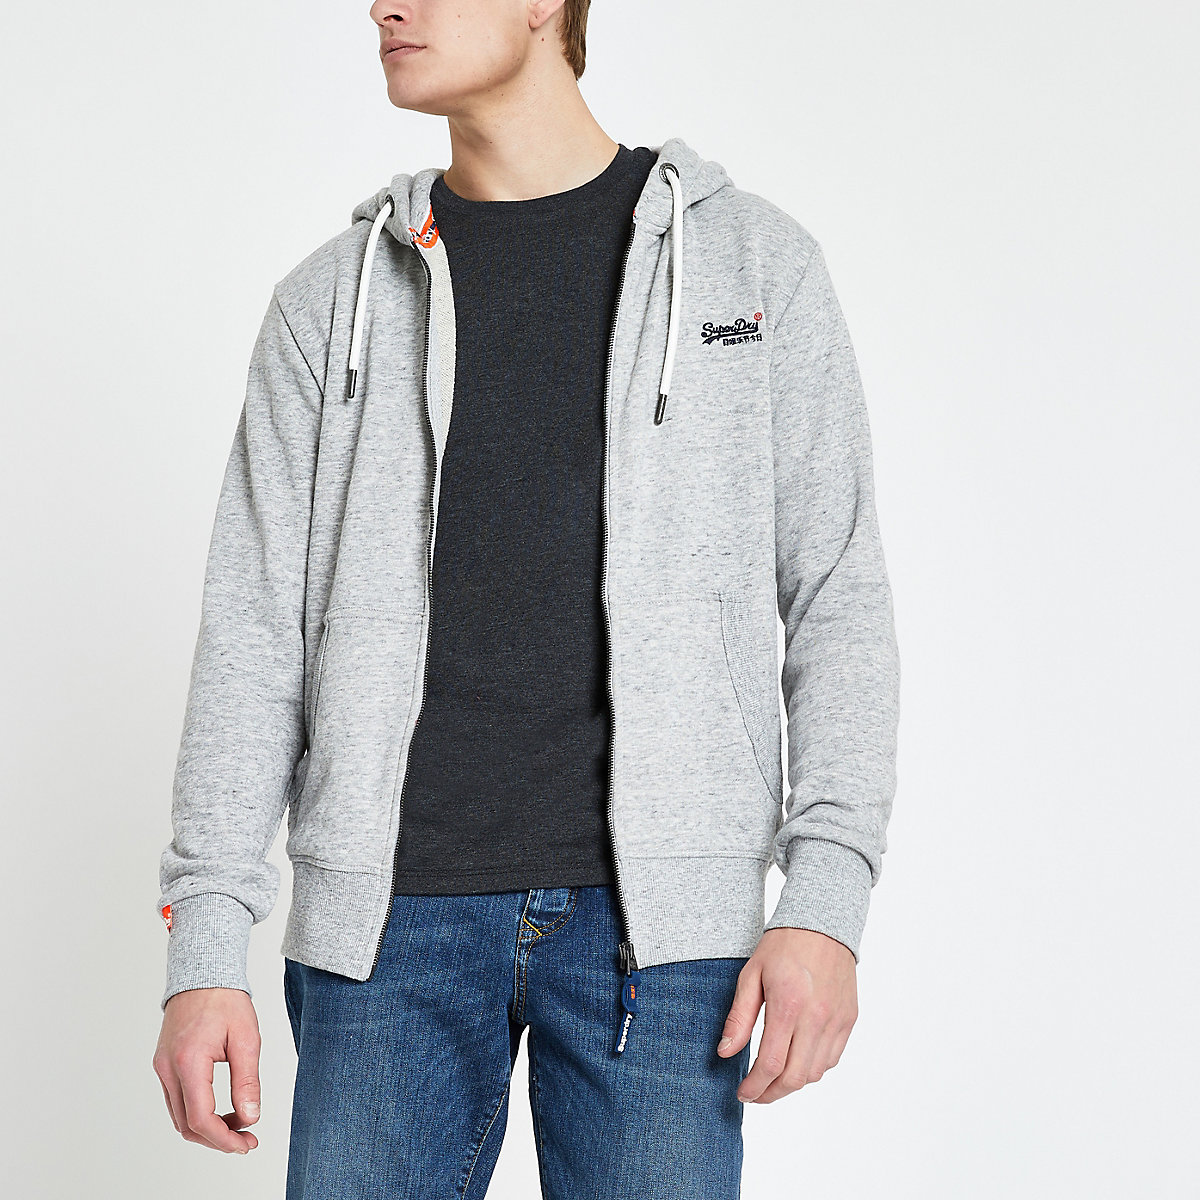 Superdry grey logo embroidered zip hoodie